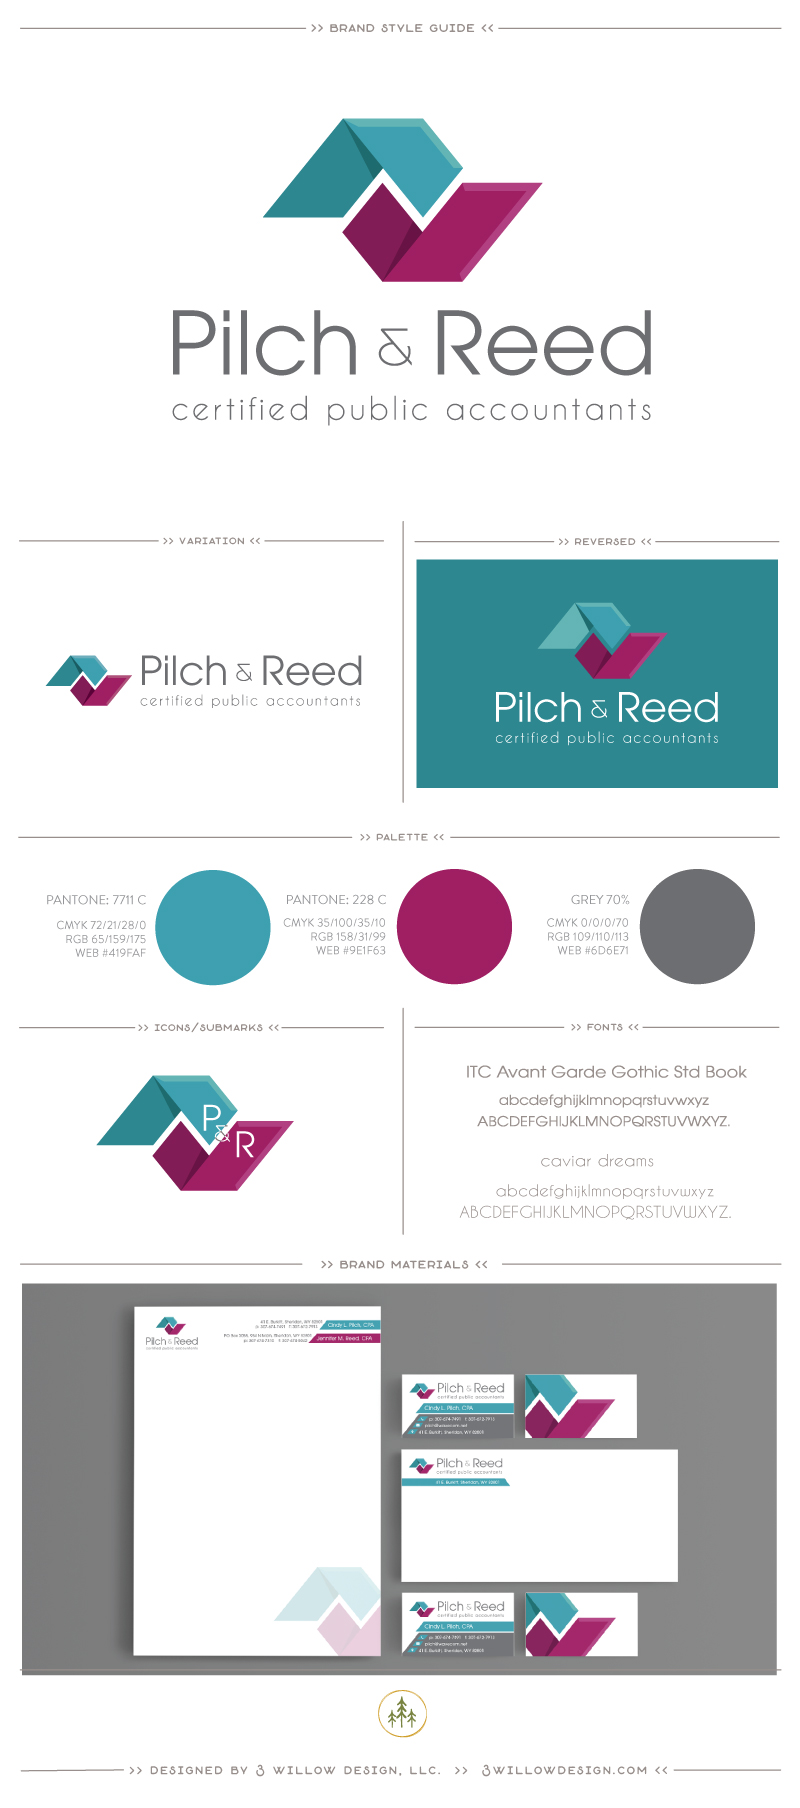 Pilch and Reed Brand Style Guide